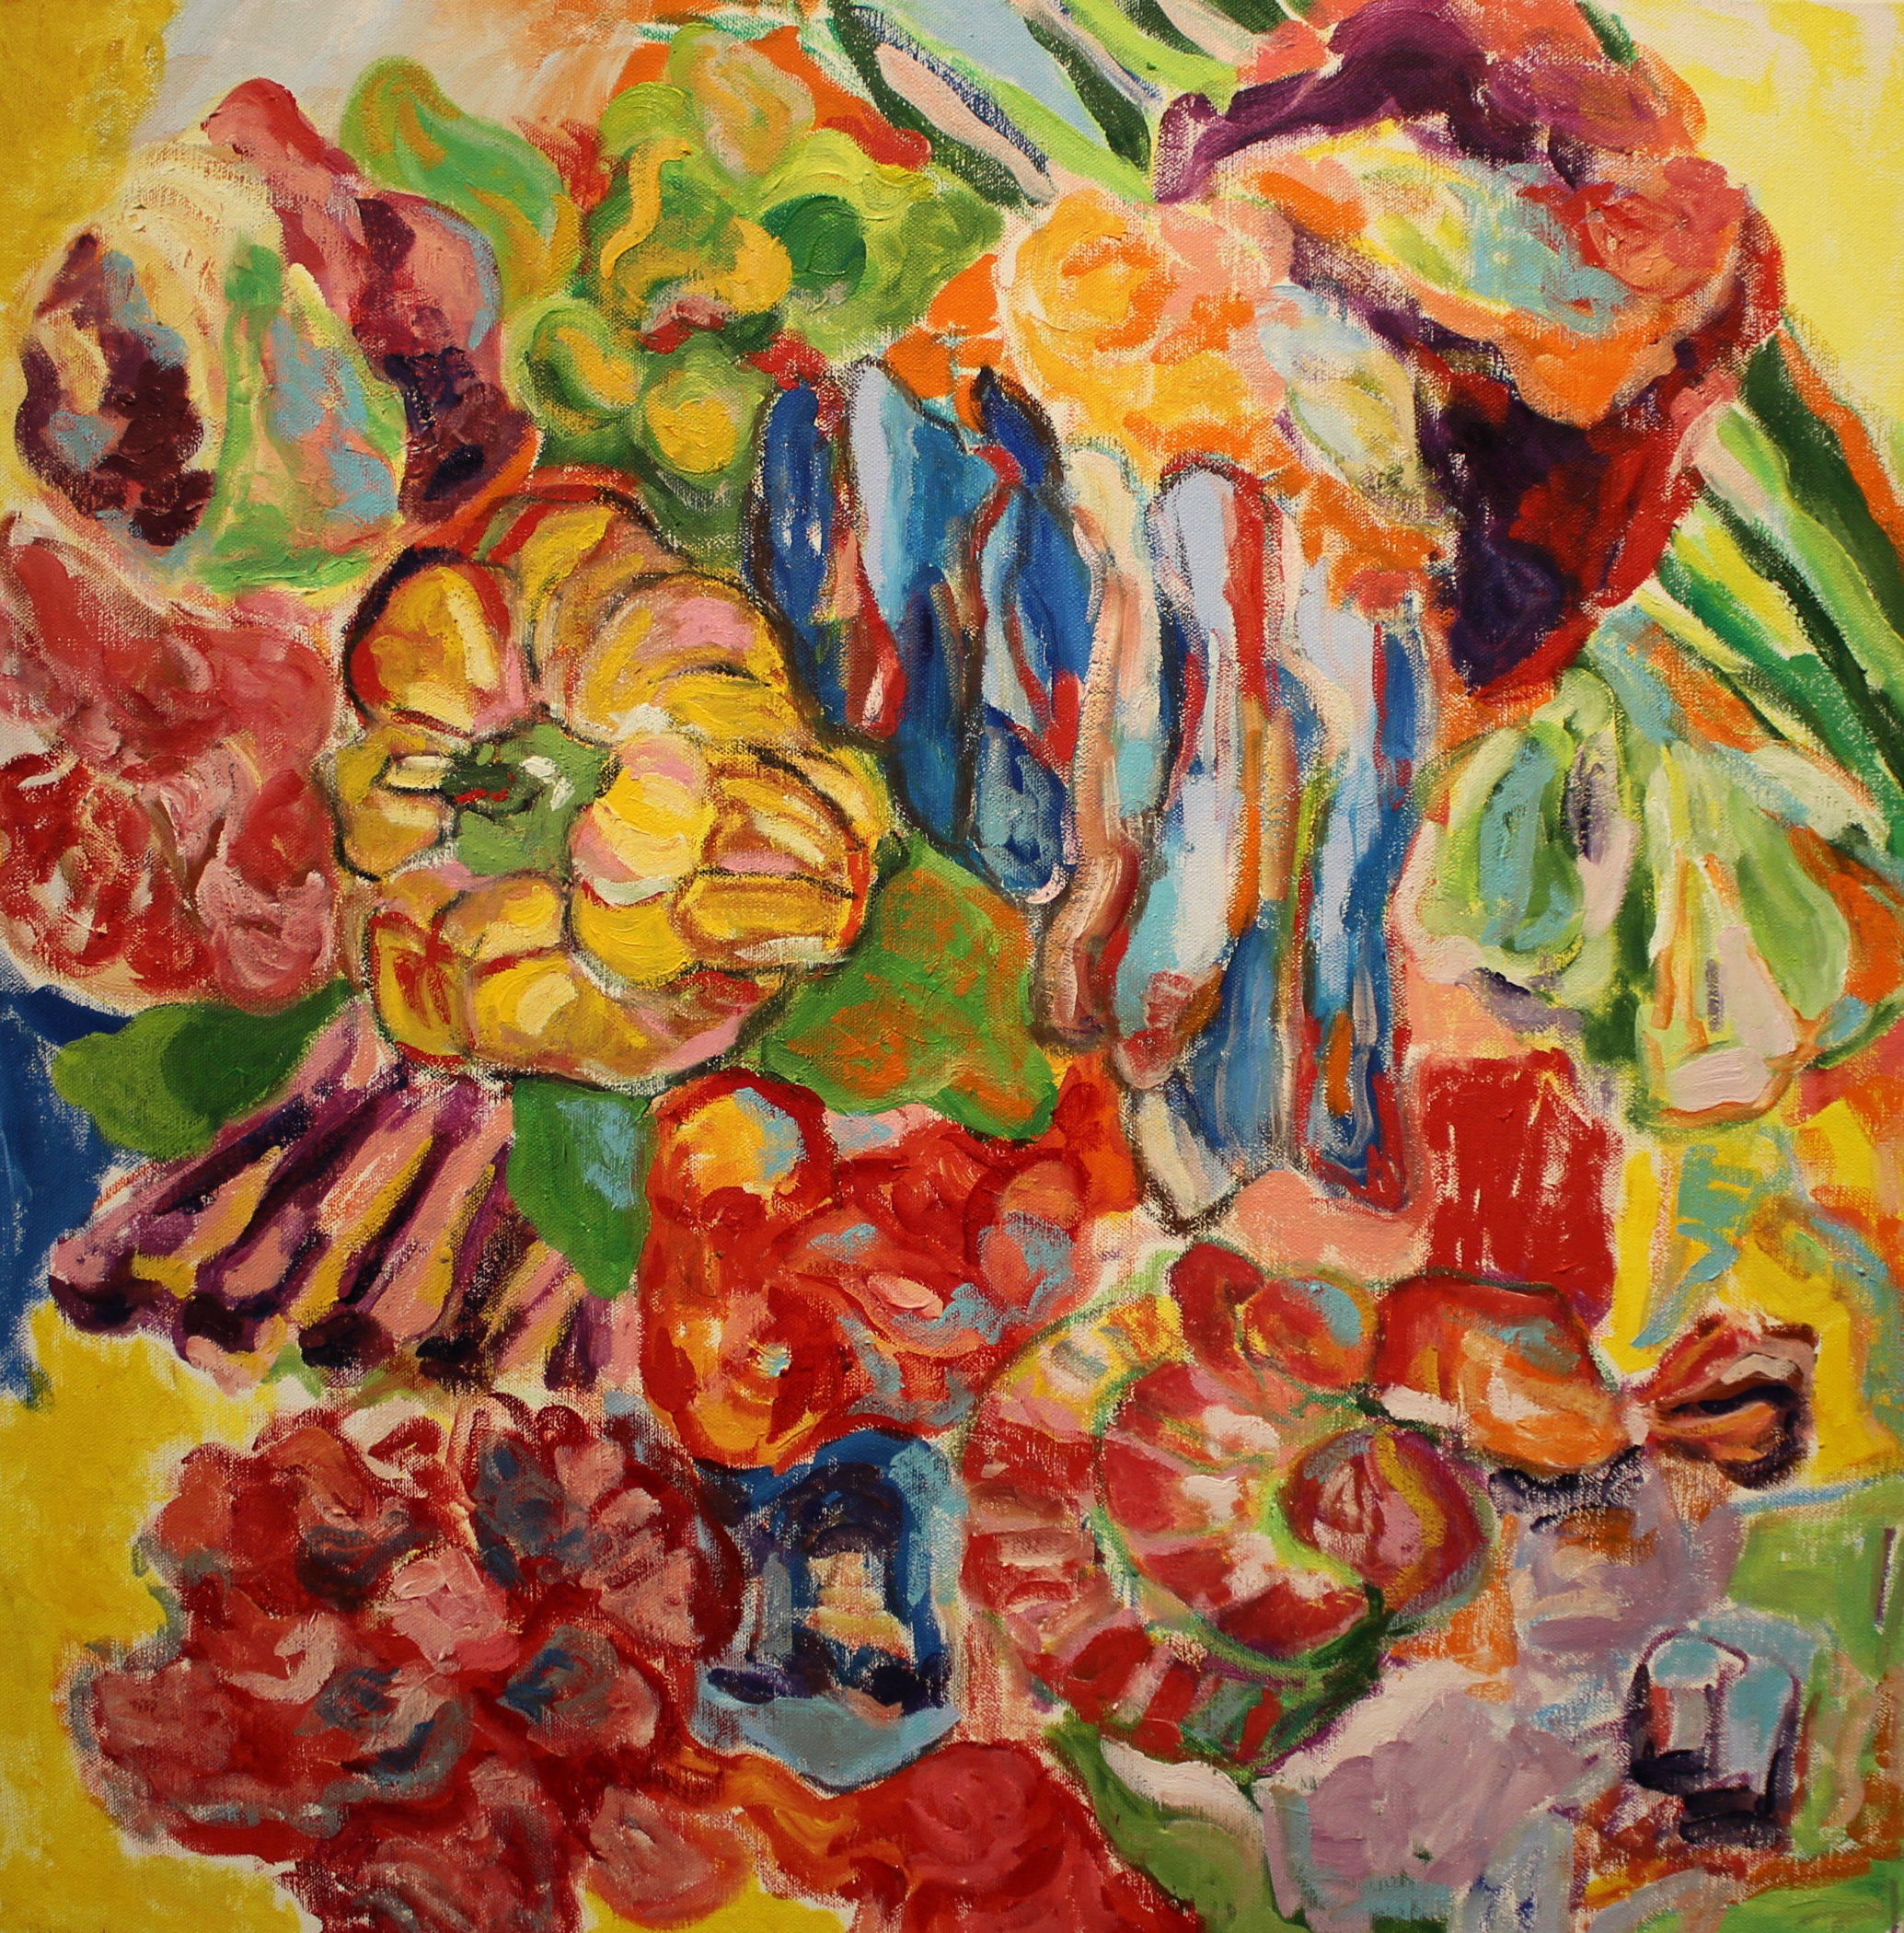 Jenna Bao_Yellow Pepper and Blue Bacon_2016_oil and pastel on canvas_24%22x24%22.jpg